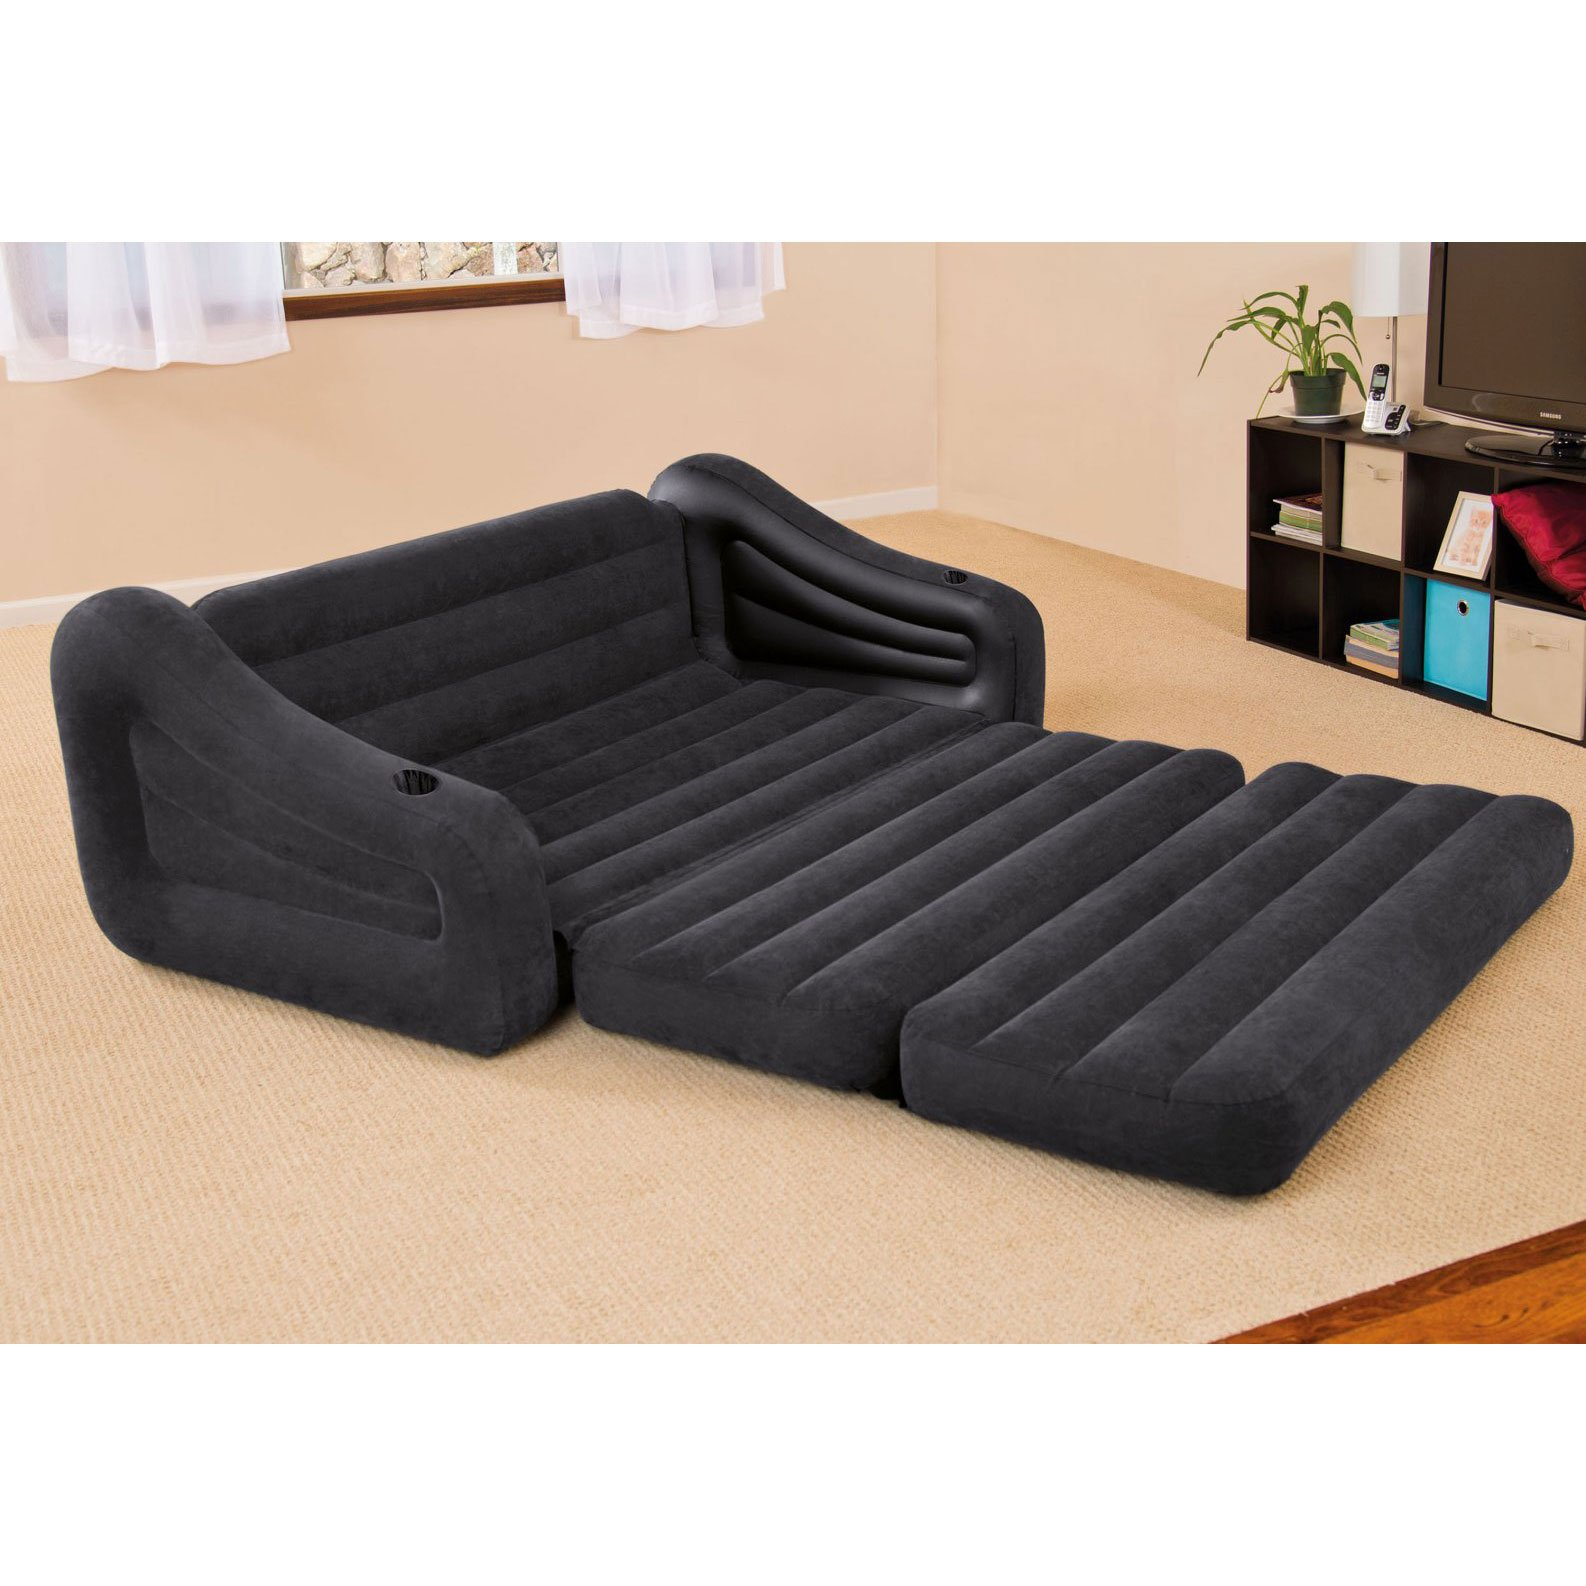 Intex inflatable queen size pull out futon sofa couch bed dark gray 68566ep